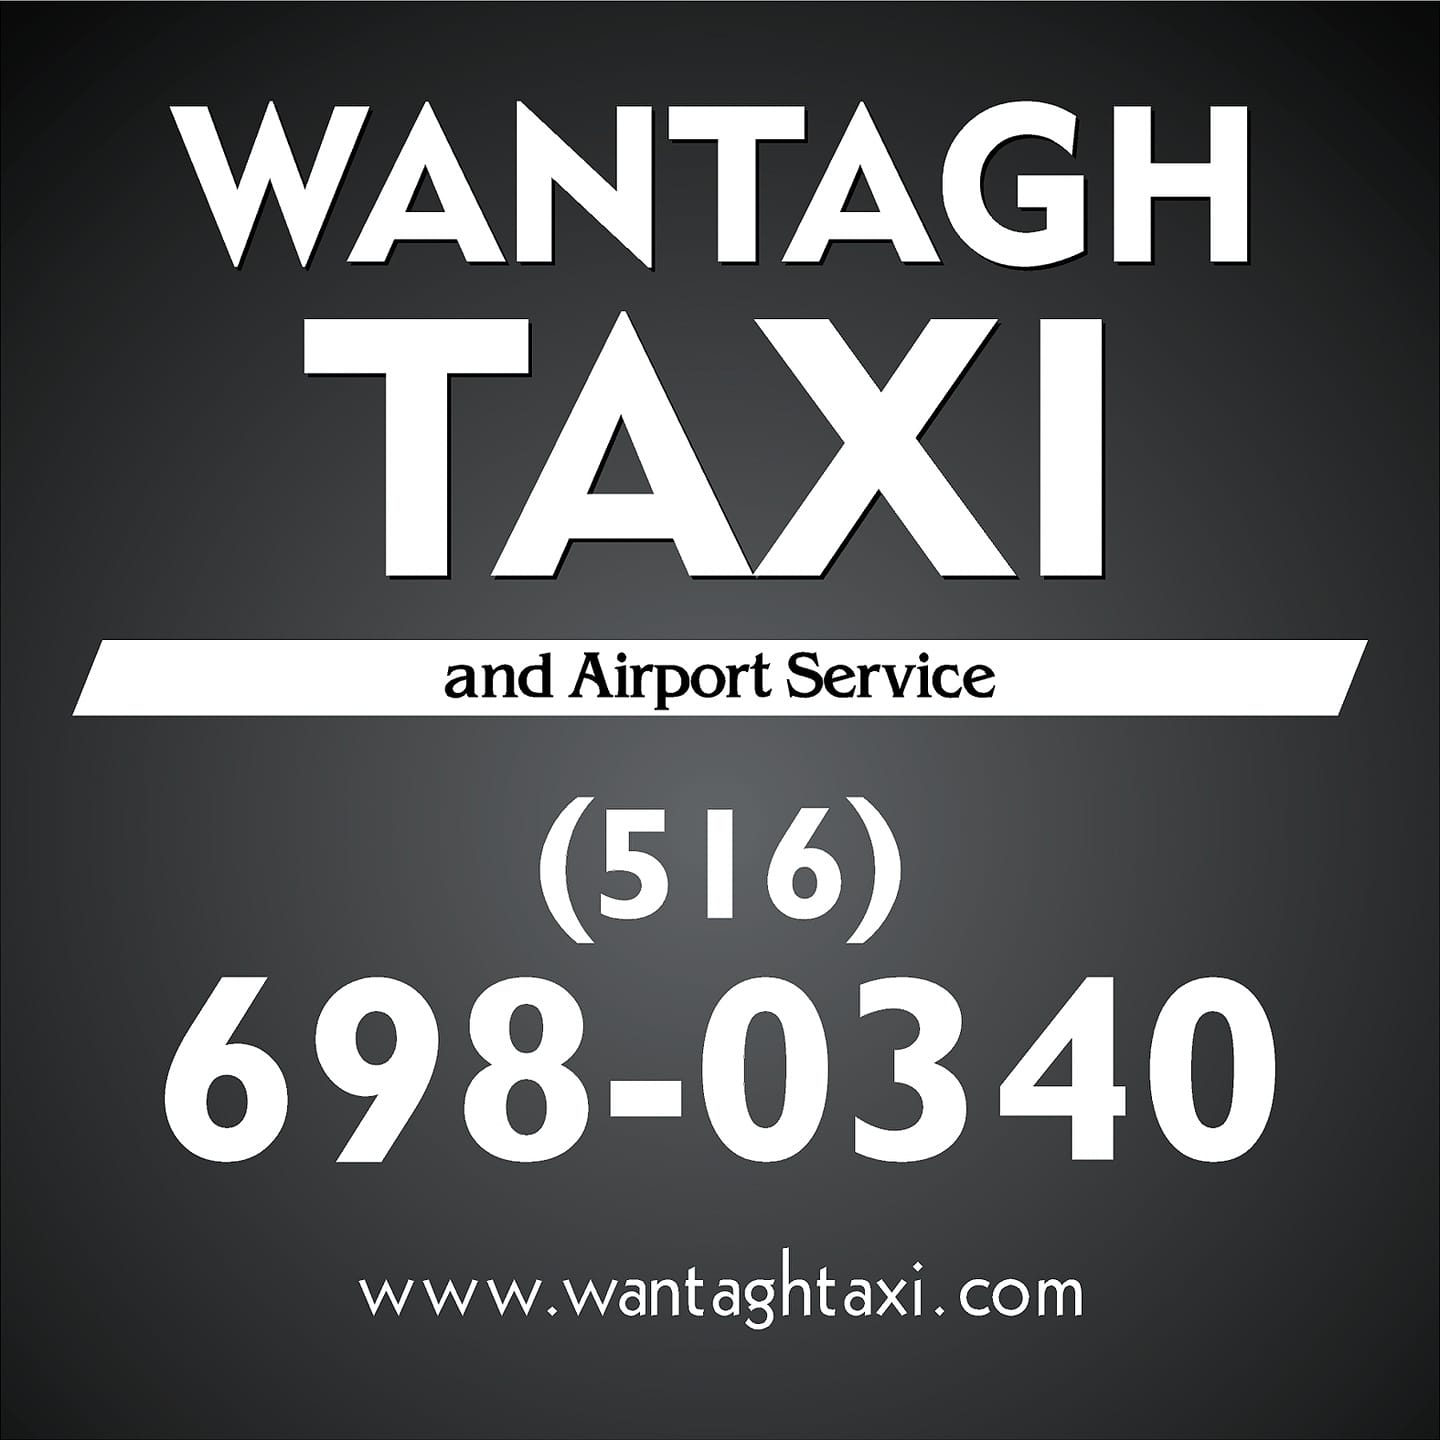 Company logo of Wantagh Taxi and Airport Service